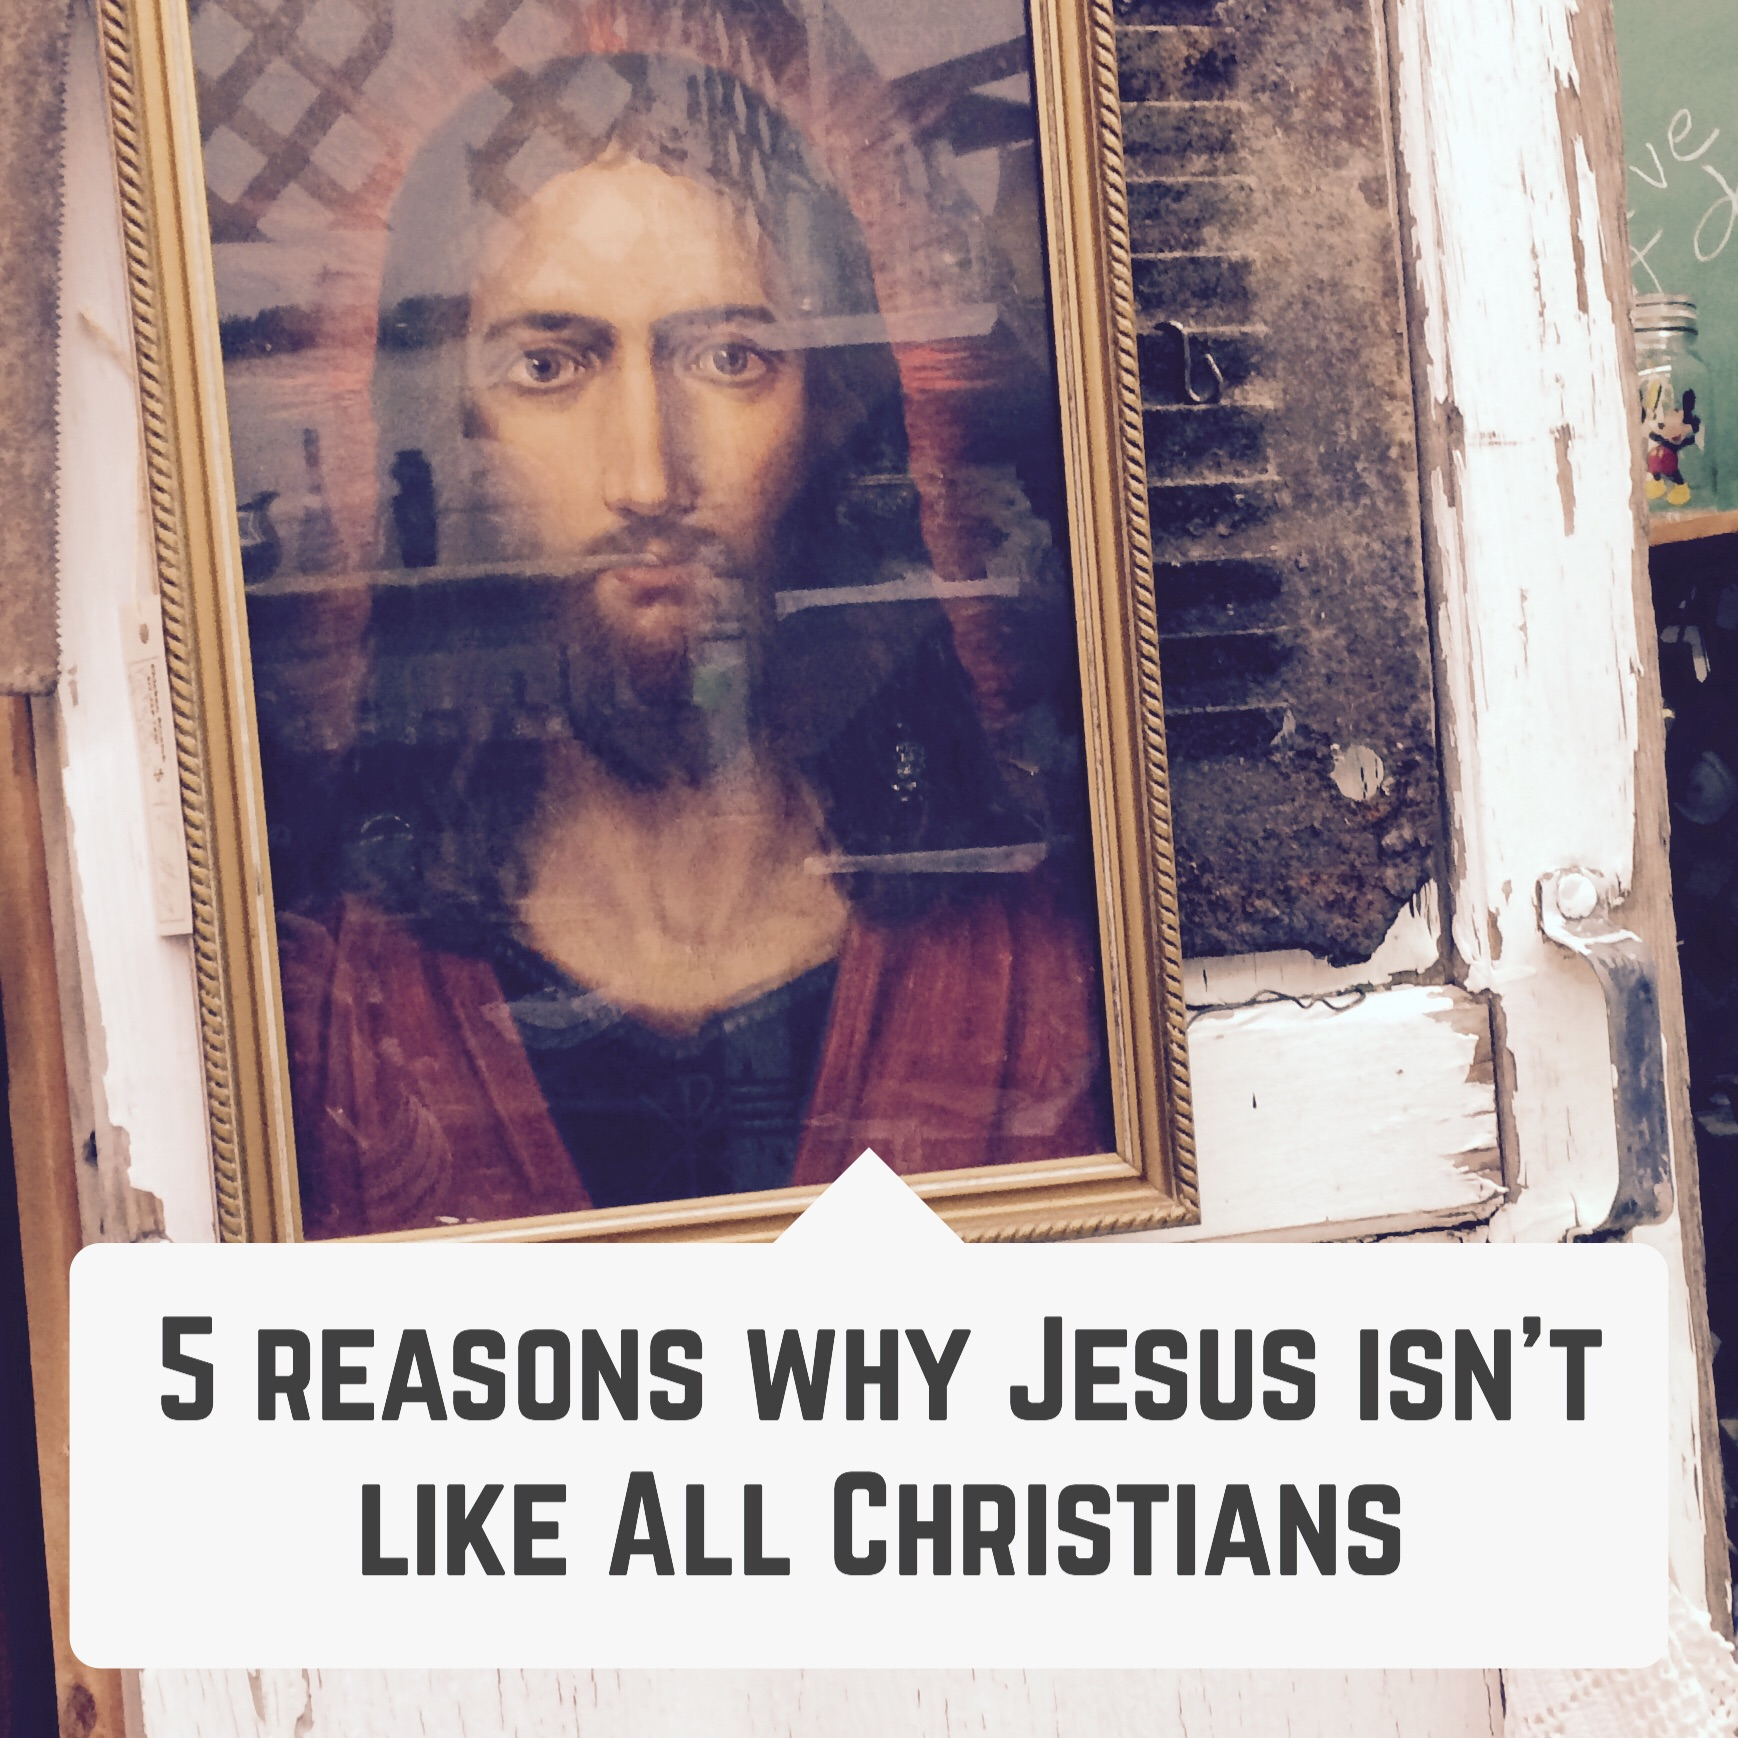 5 REASONS WHY JESUS ISN'T LIKE ALL CHRISTIANS